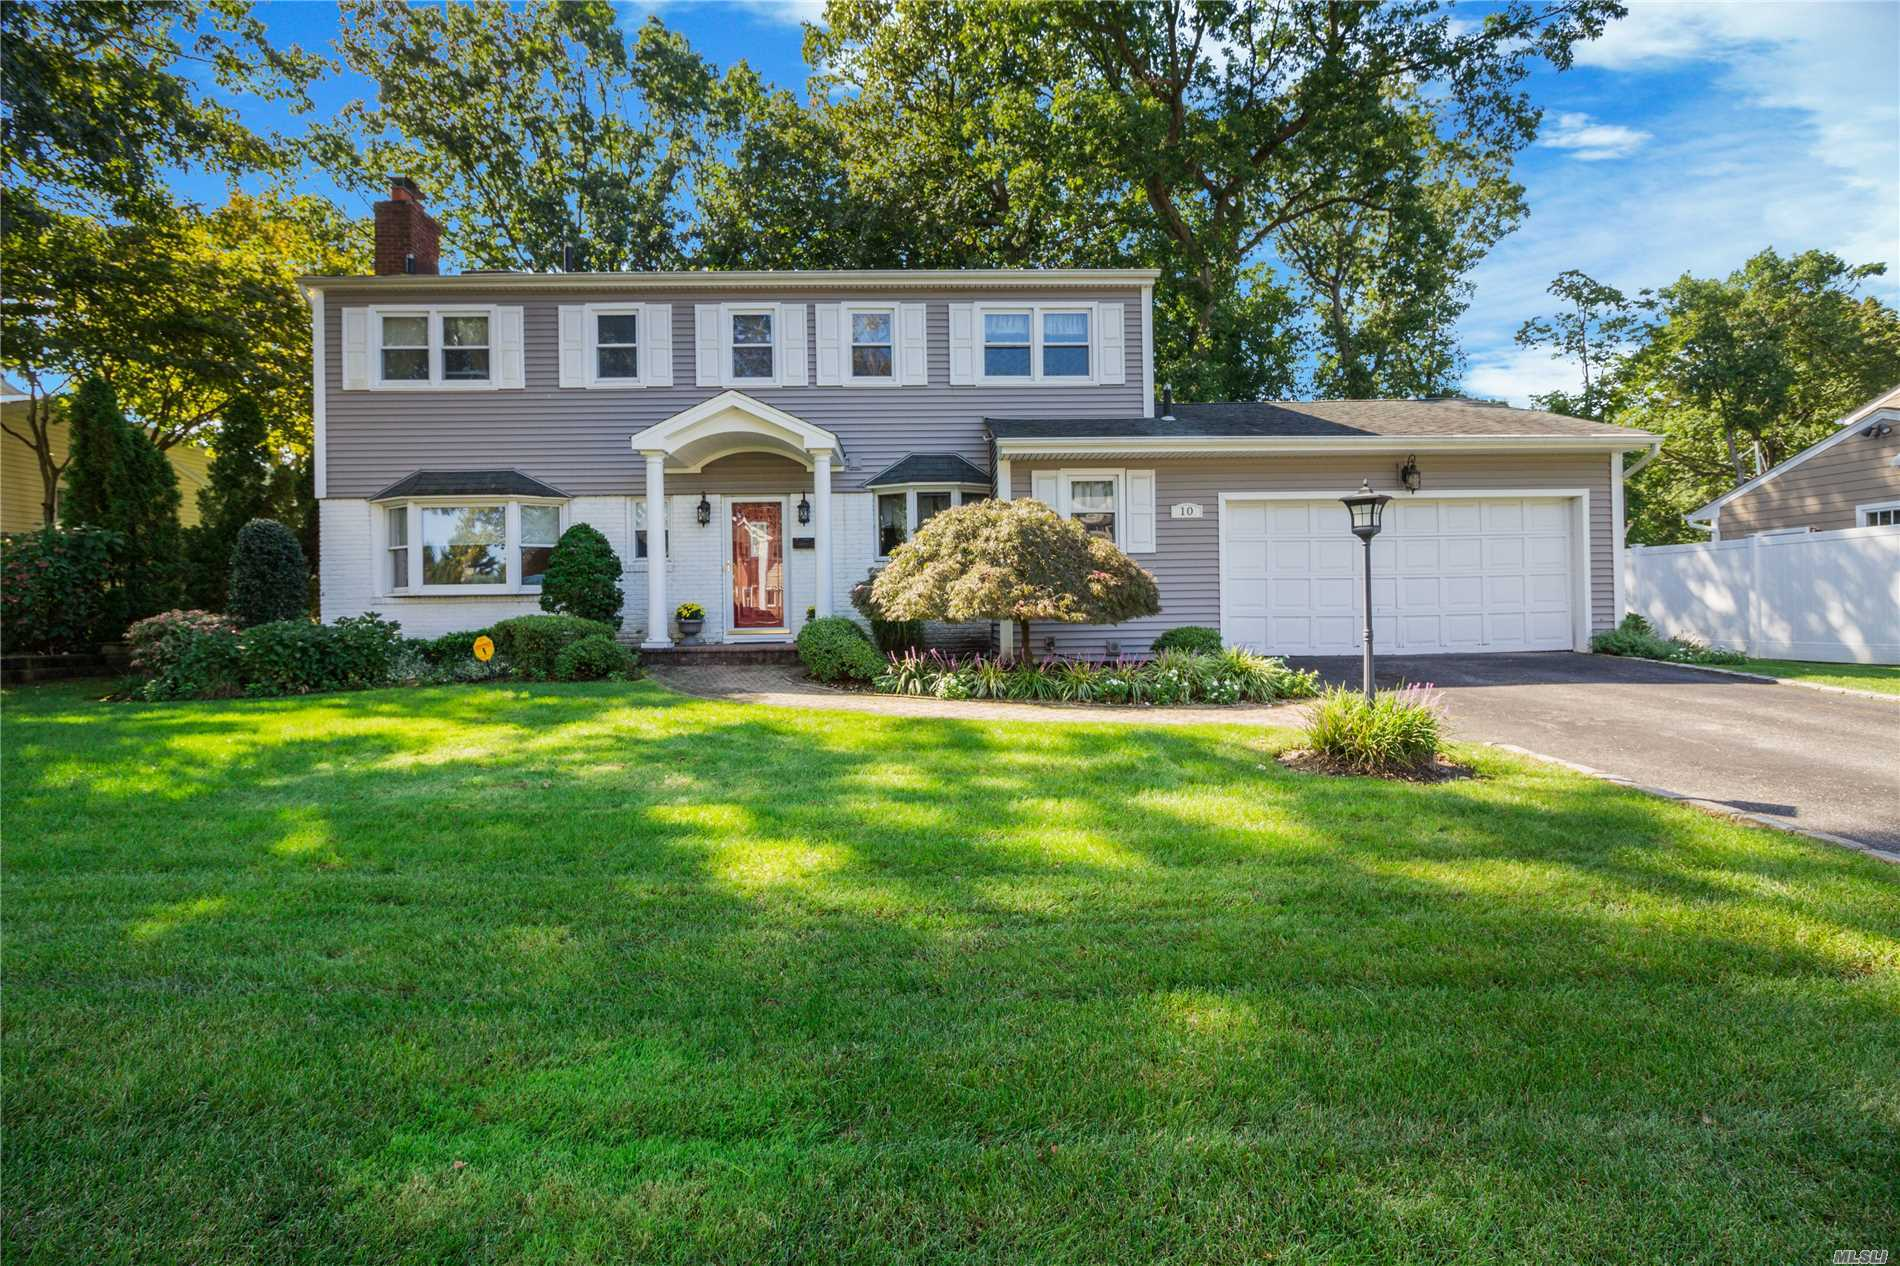 Oyster Bay At Its Finest! Spacious Center Hall Colonial In Desirable Forest Estates Pool Community, Sited On Fully Fenced Professionally Landscaped Property. This Home Offers A Formal Living Room With Sliders That Open To A Trex Deck, Family Room W/ Fireplace, Oversized Formal Dining Room, Eat In Kitchen W/ Granite Counters, Laundry Room, 2 Fl Bths & Powder Room, Master Suite W/ Walk In Closet, 3 Large Bedrooms, Gleaming Hardwood Floors Throughout, Finished Basement, 2 Car Garage, Cac..Must See!